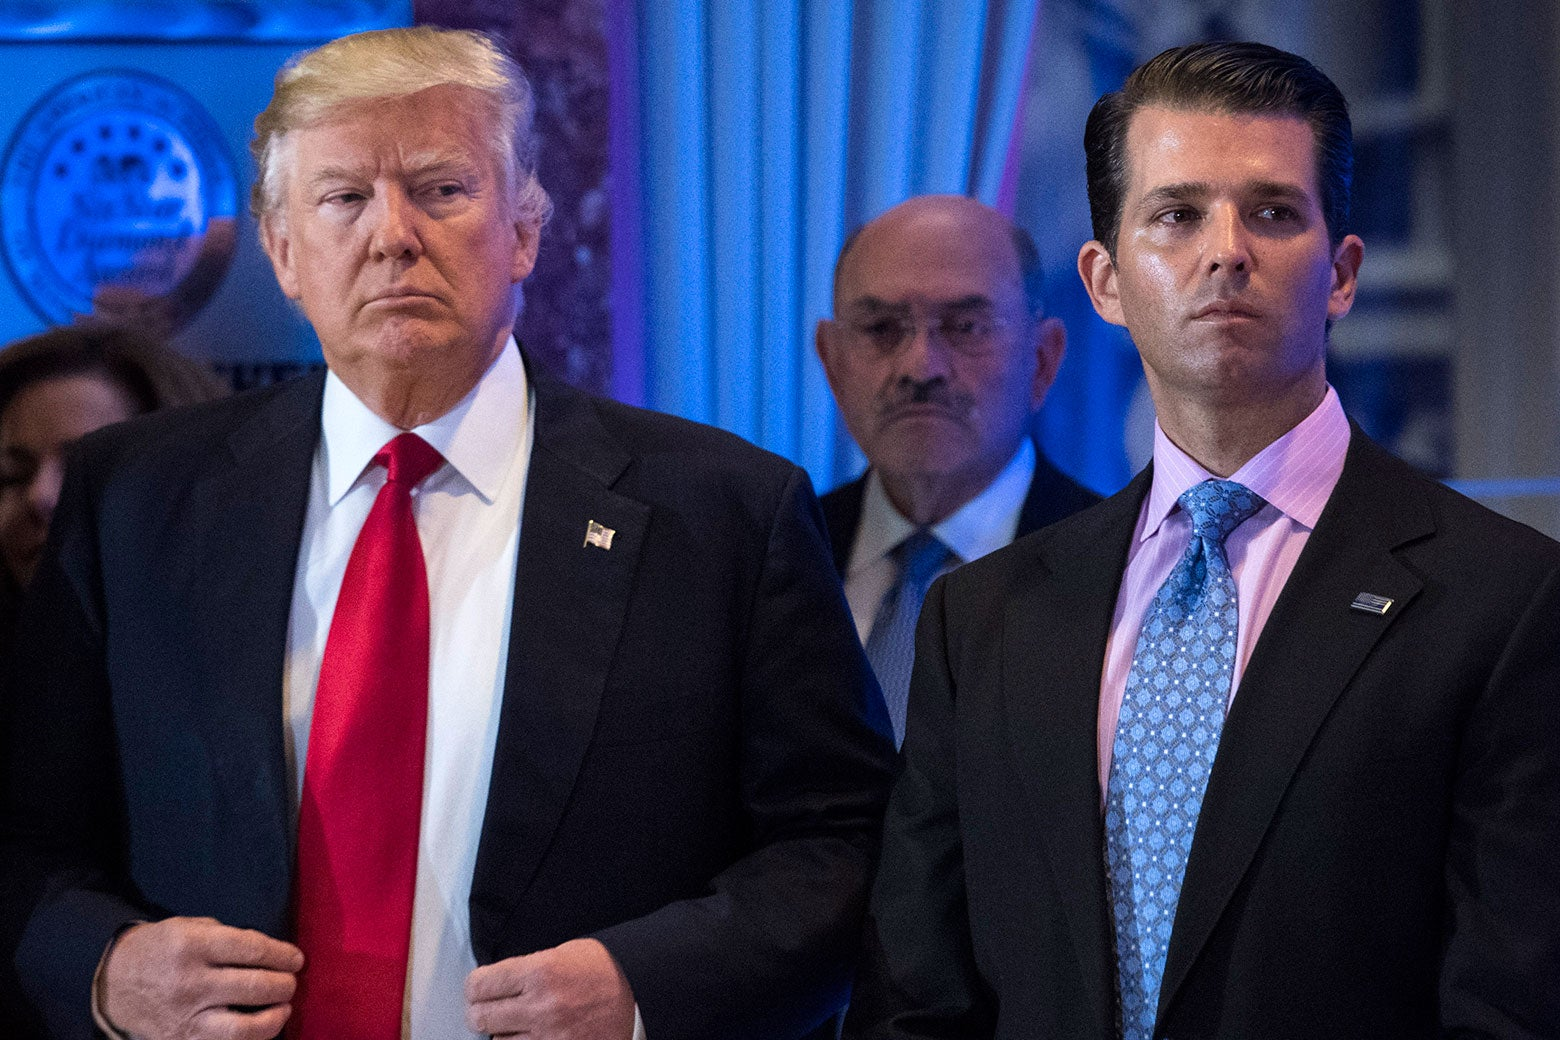 Donald Trump and Donald Trump Jr. stand beside each other.